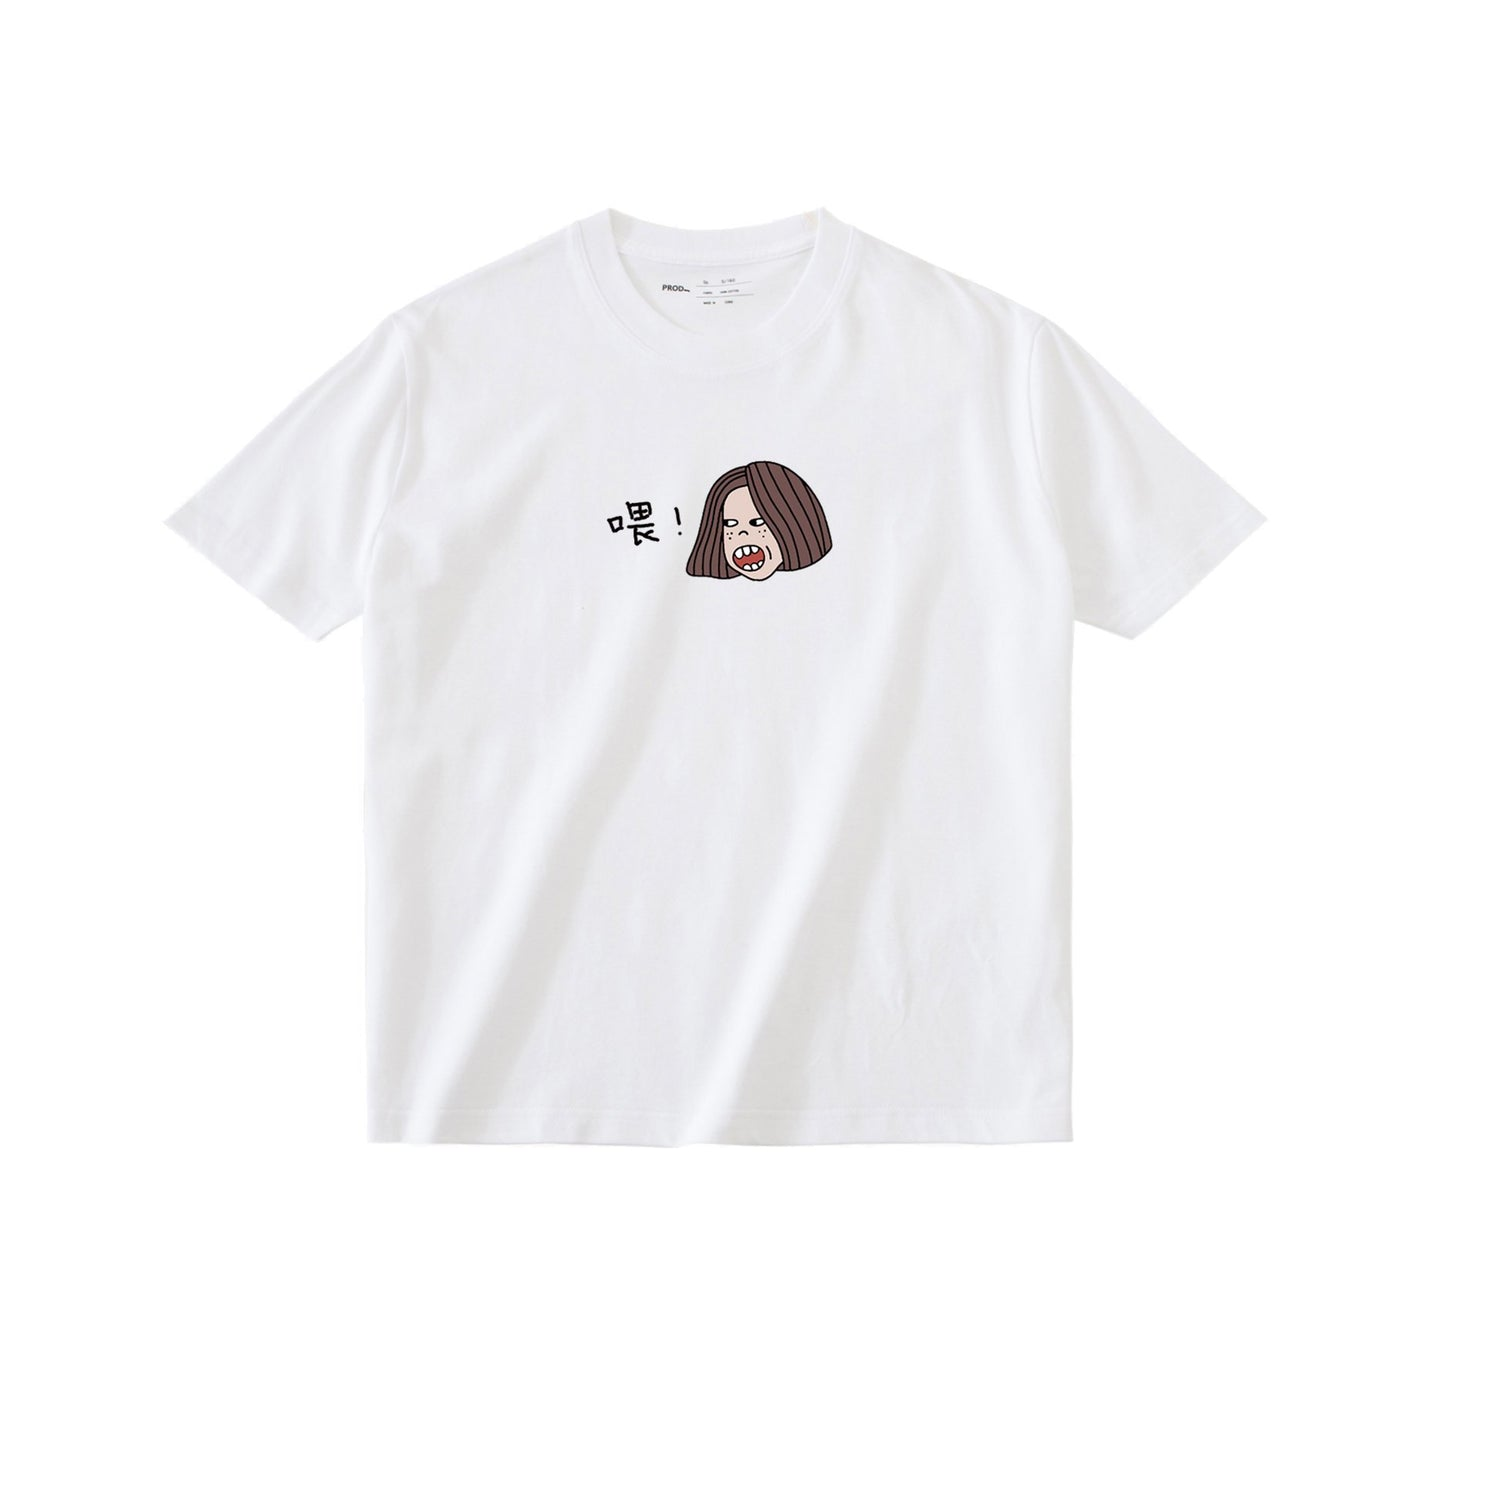 PROD Bldg T Shirt XS / White HEY!!